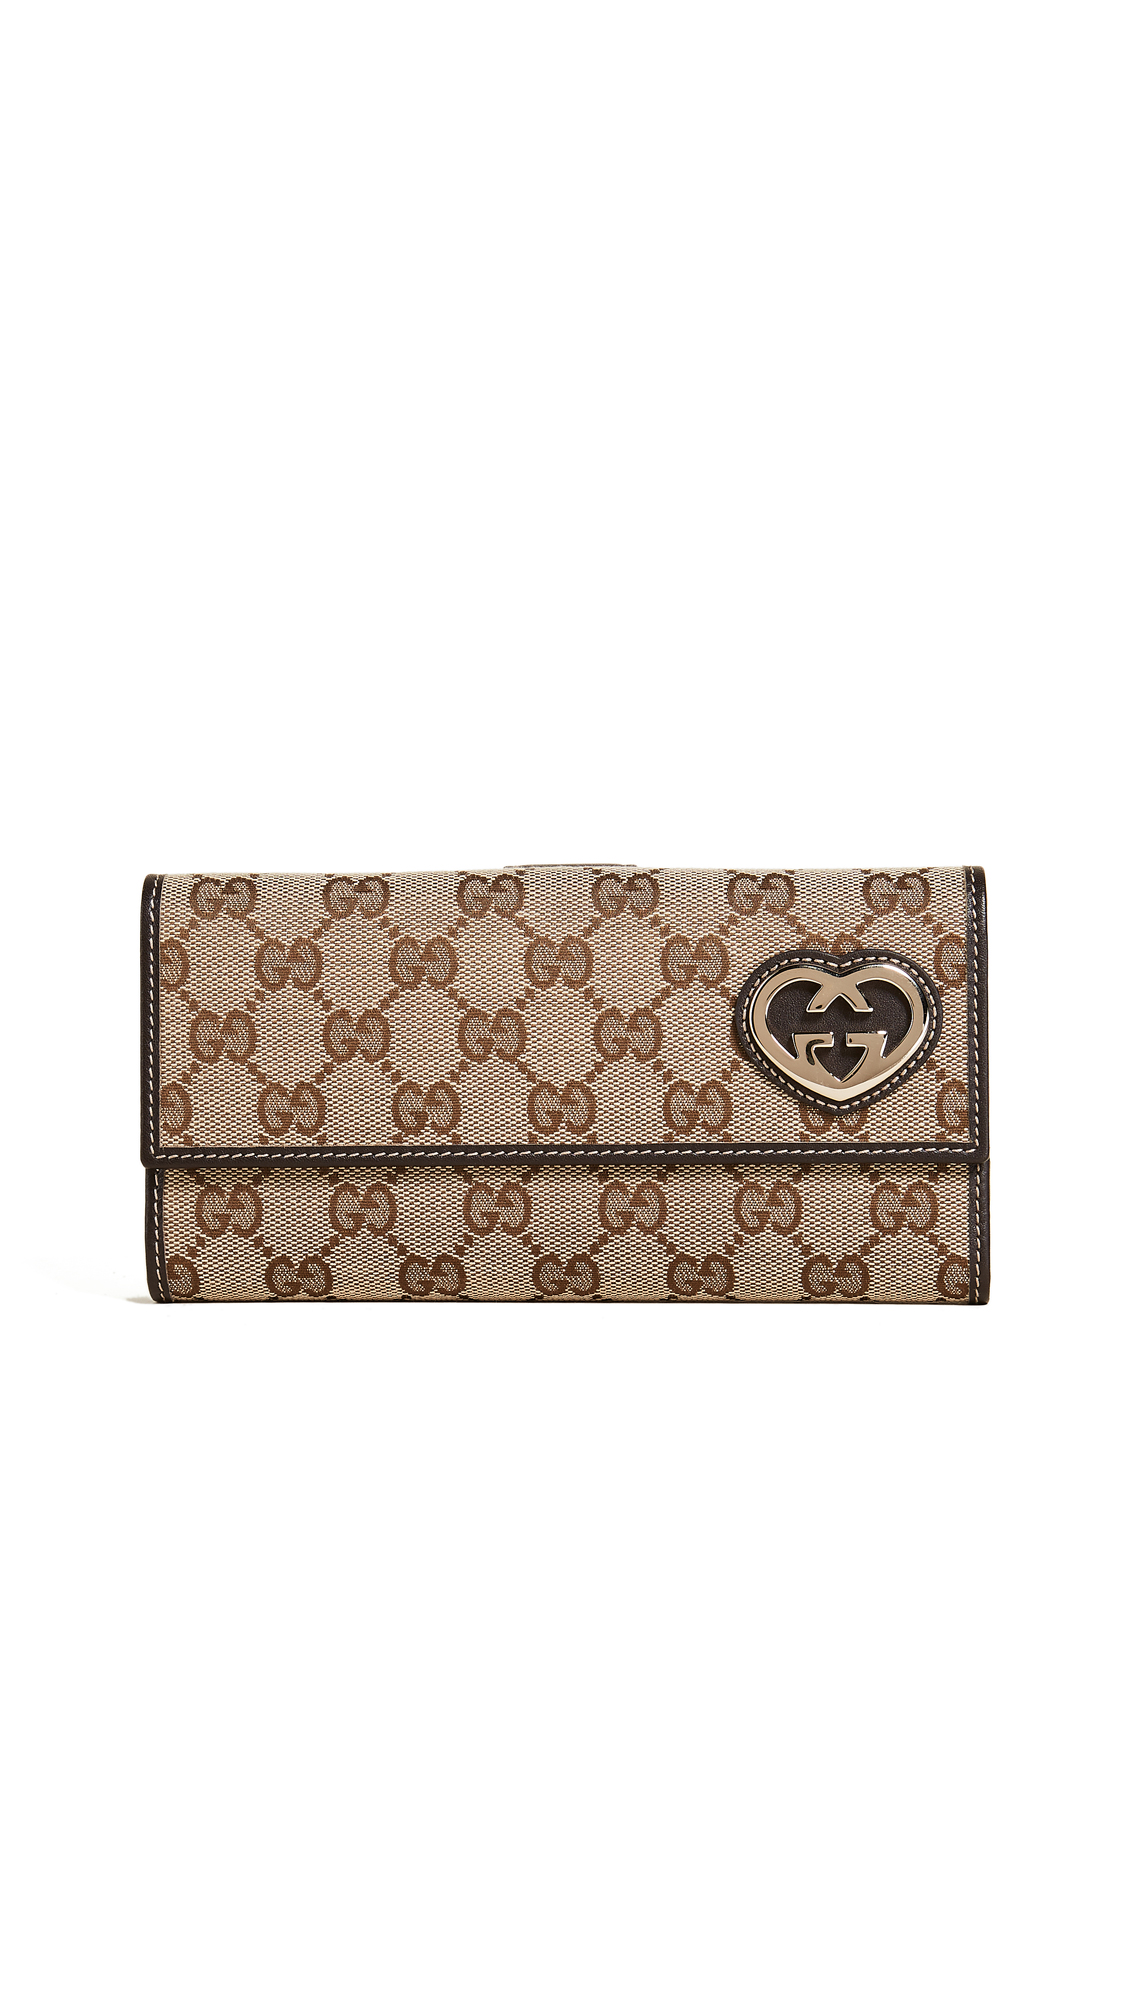 What Goes Around Comes Around Gucci Guccissima Canvas Wallet (Previously Owned) - Brown